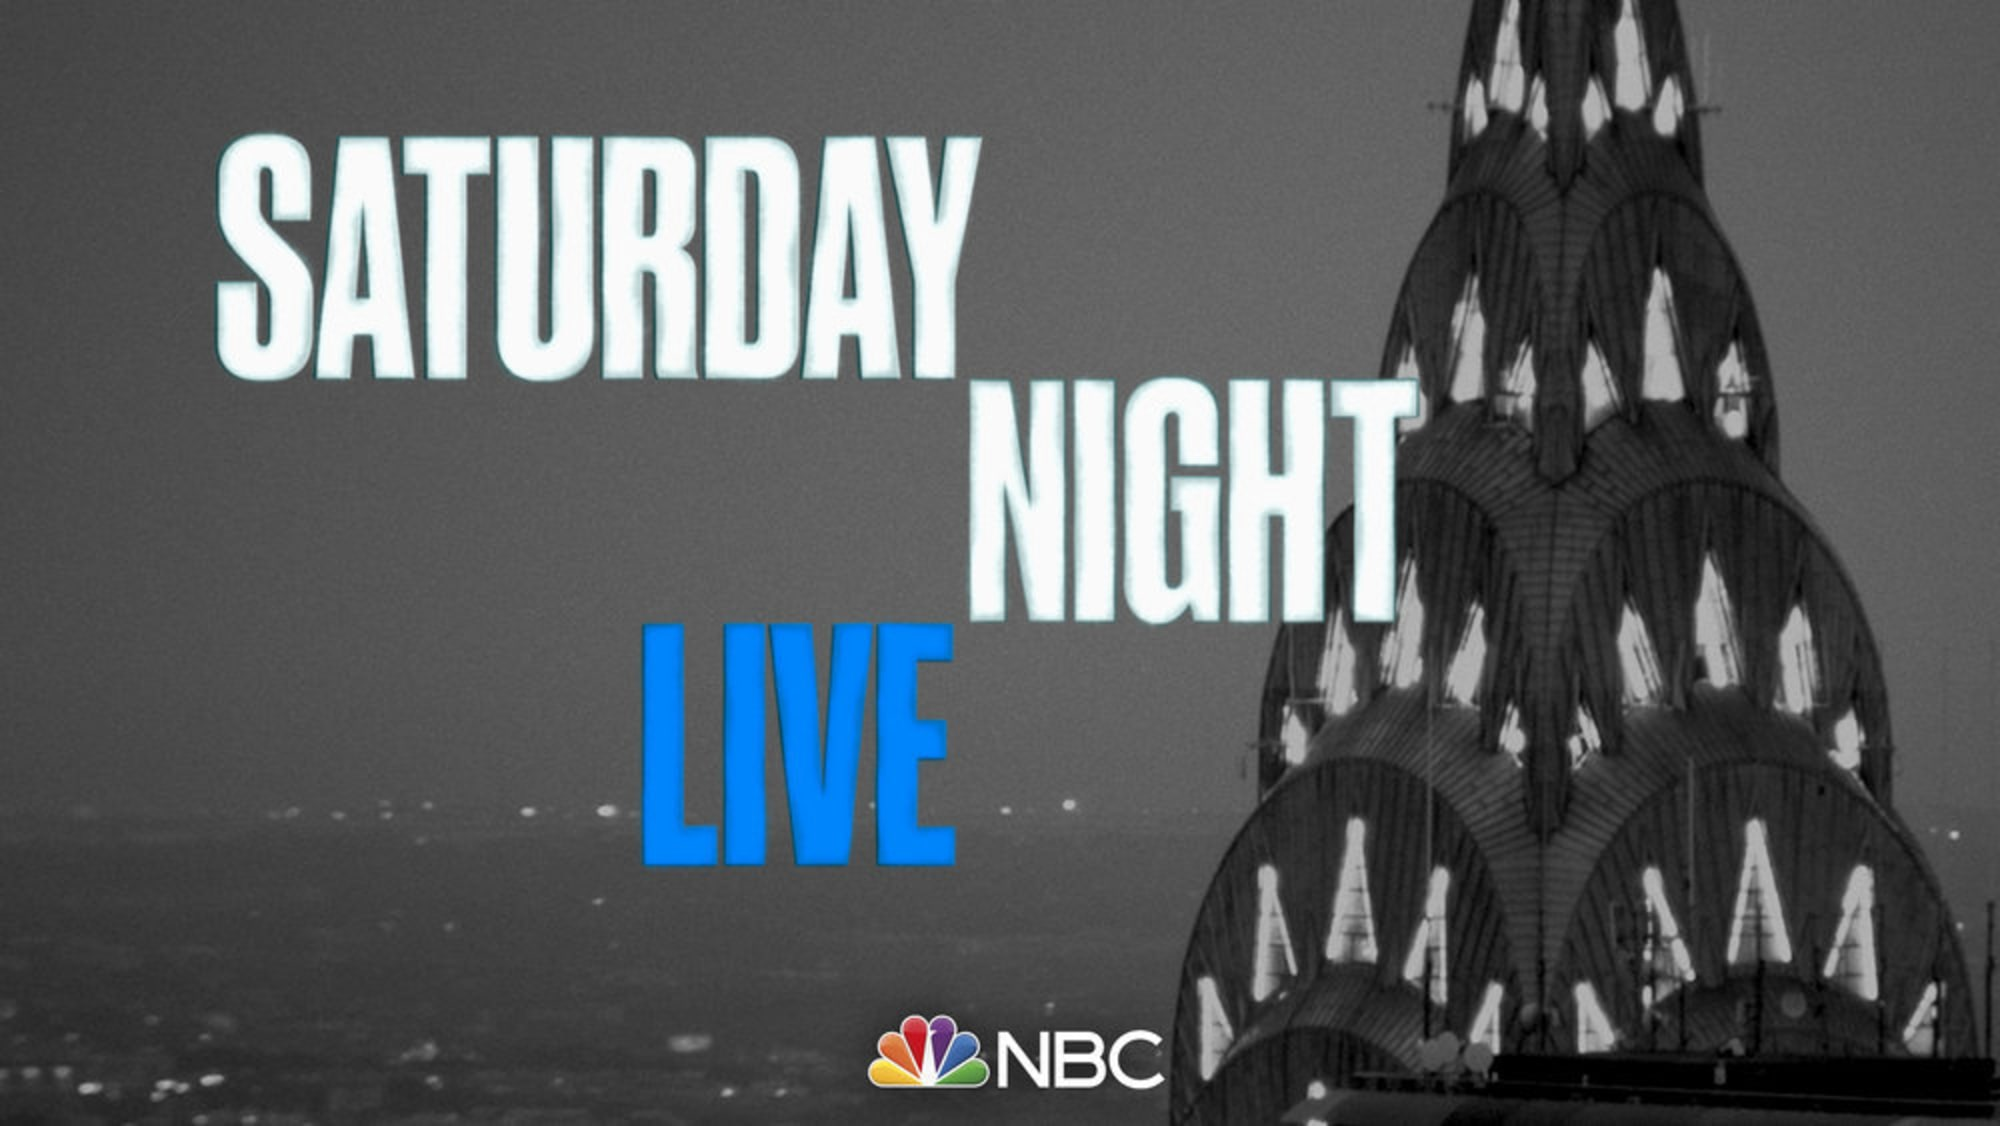 Who's the musical guest on Saturday Night Live tonight, January 30?